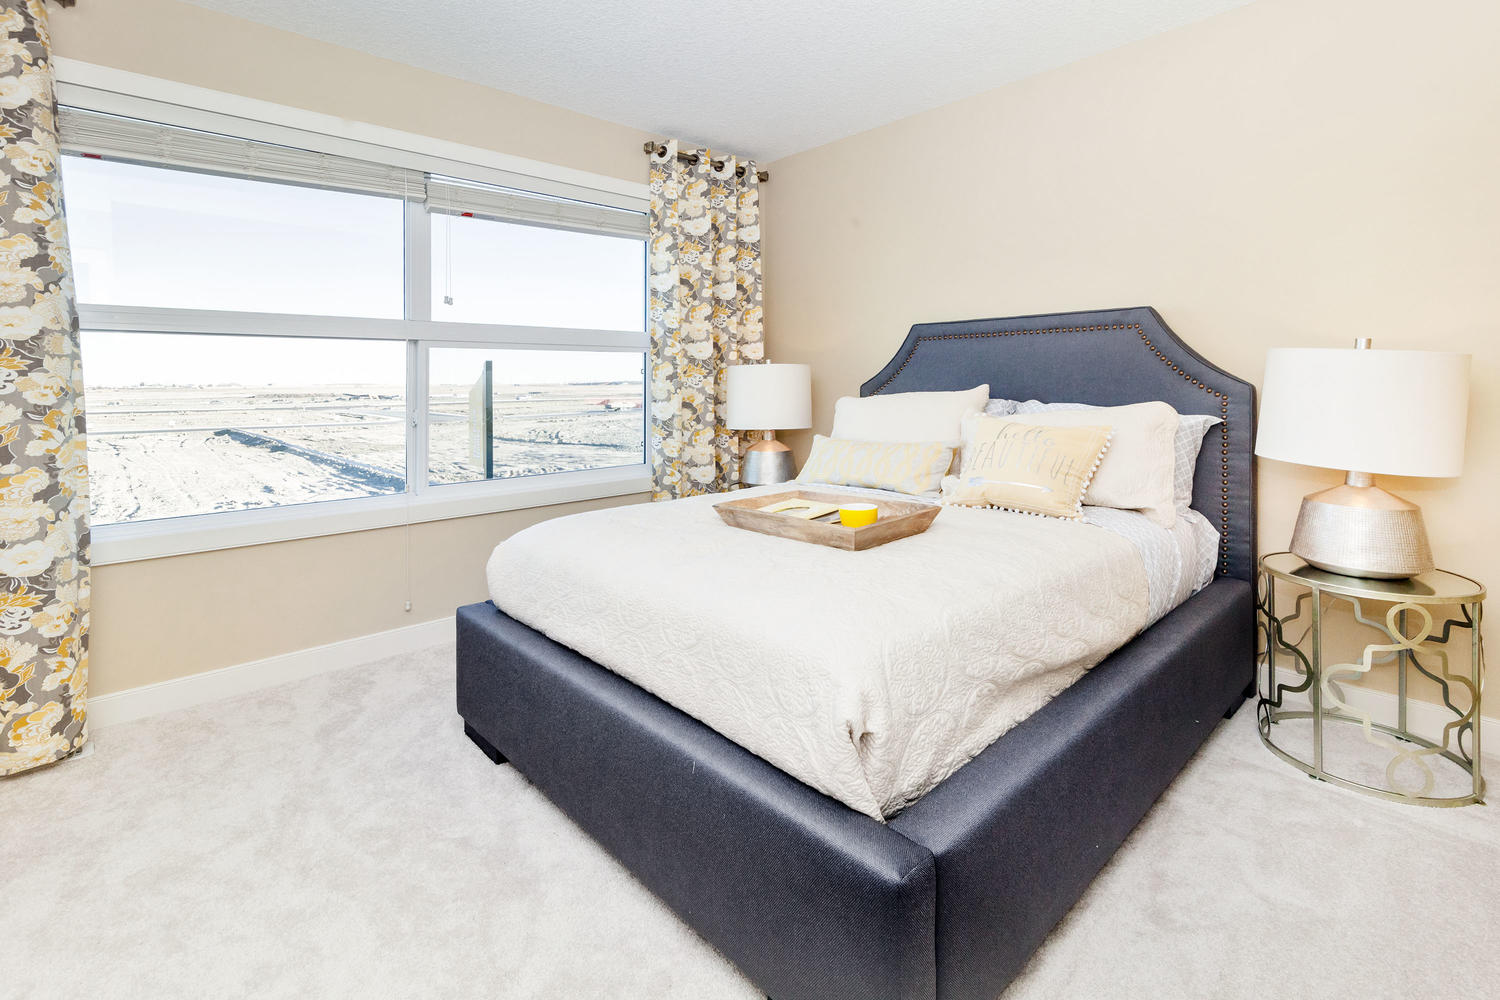 faux leather headboard in bedroom of the pacesetter front drive show home.